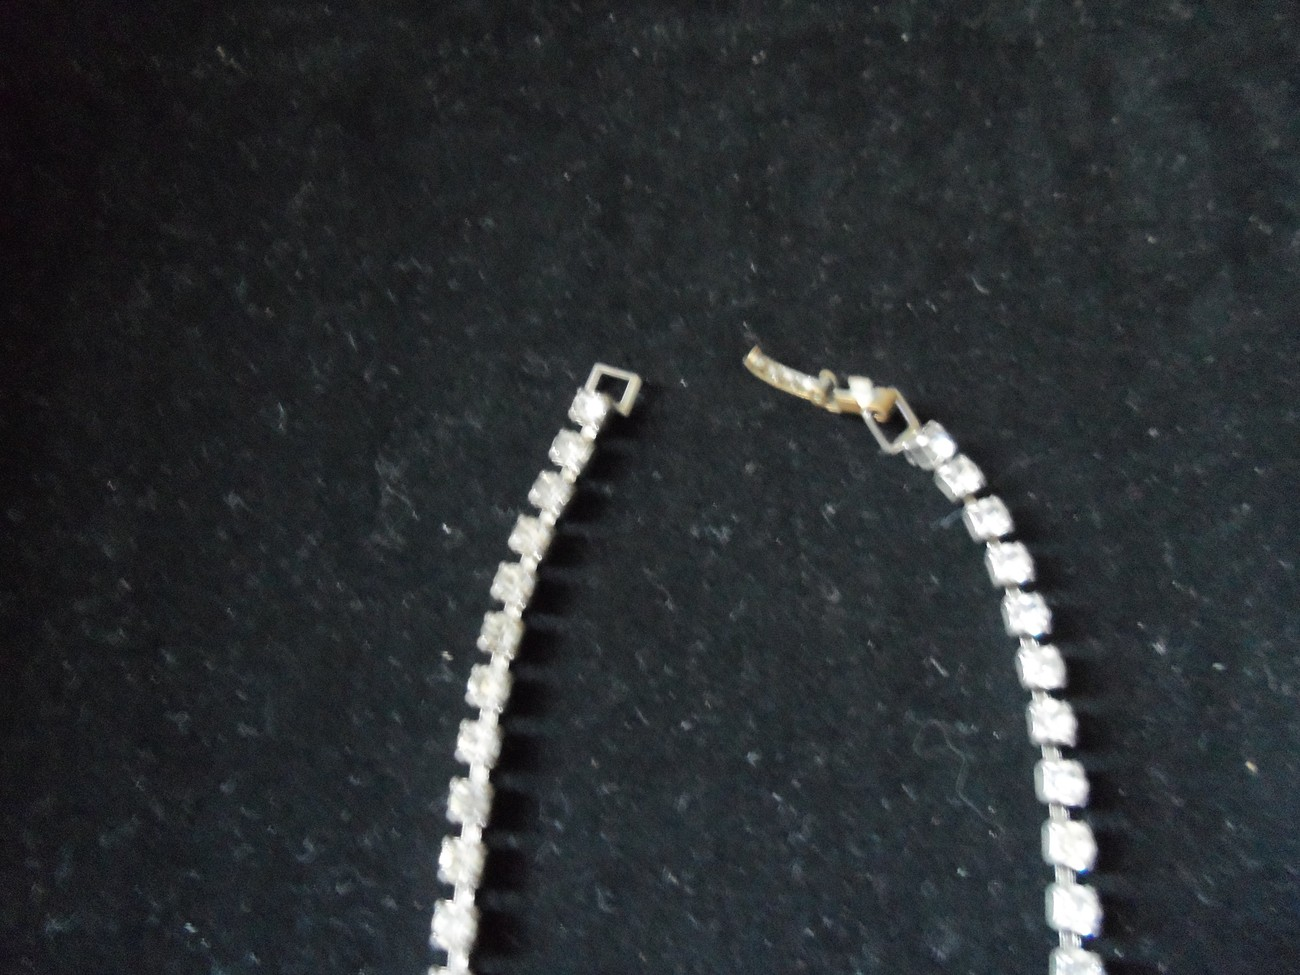 Woman's accessories and handbags - Vintage Rhinestone Jewelry - Necklace